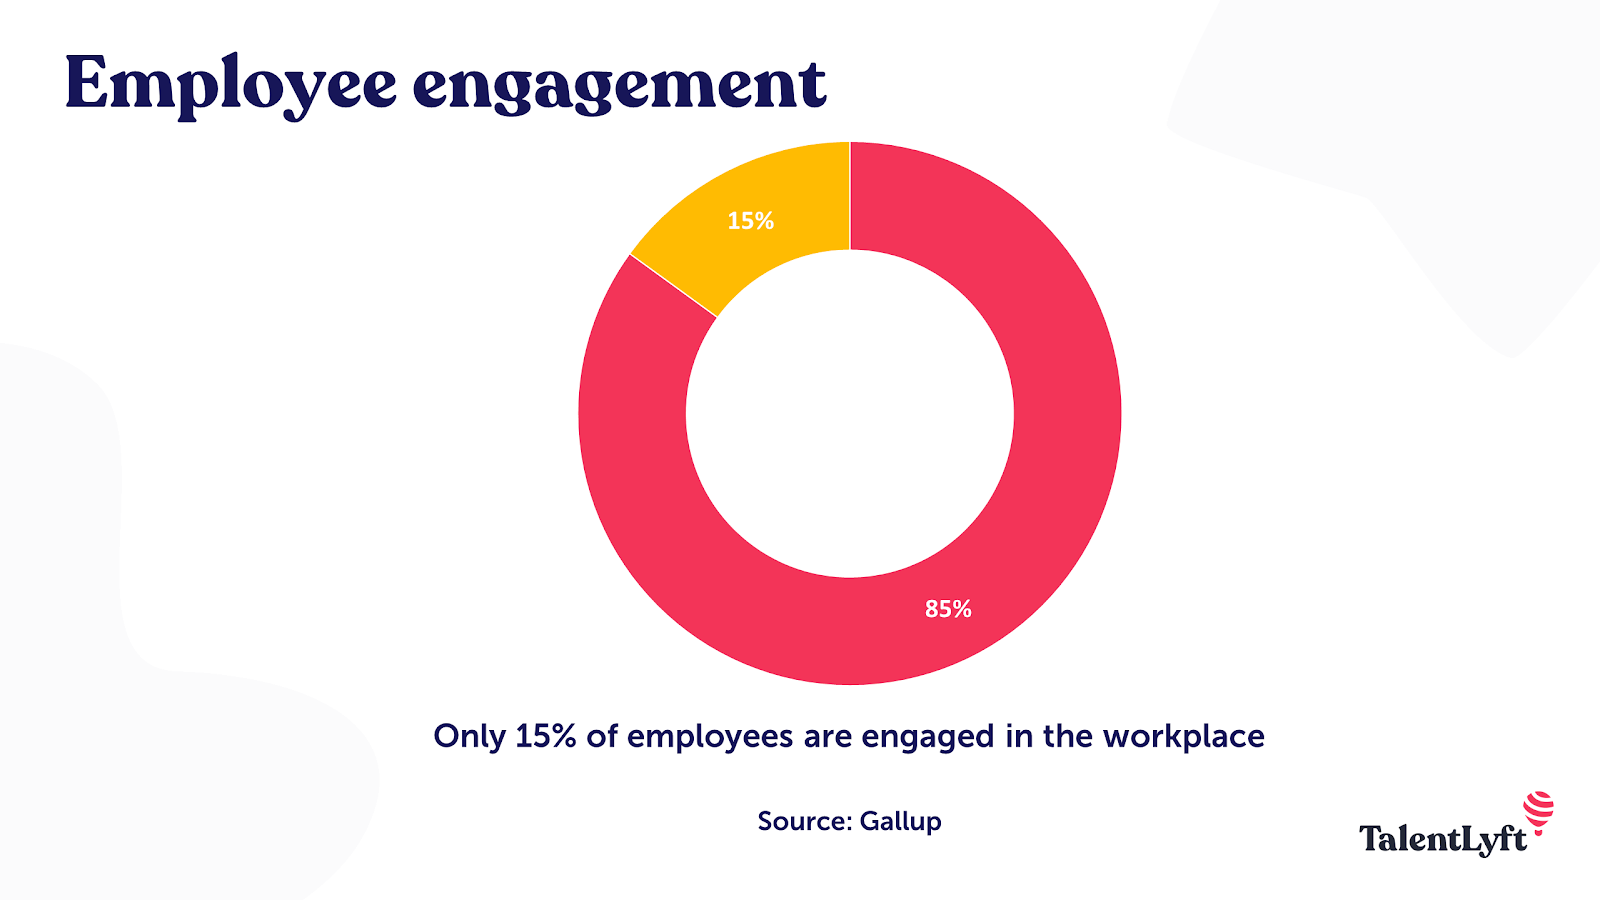 Employee engagement statistic